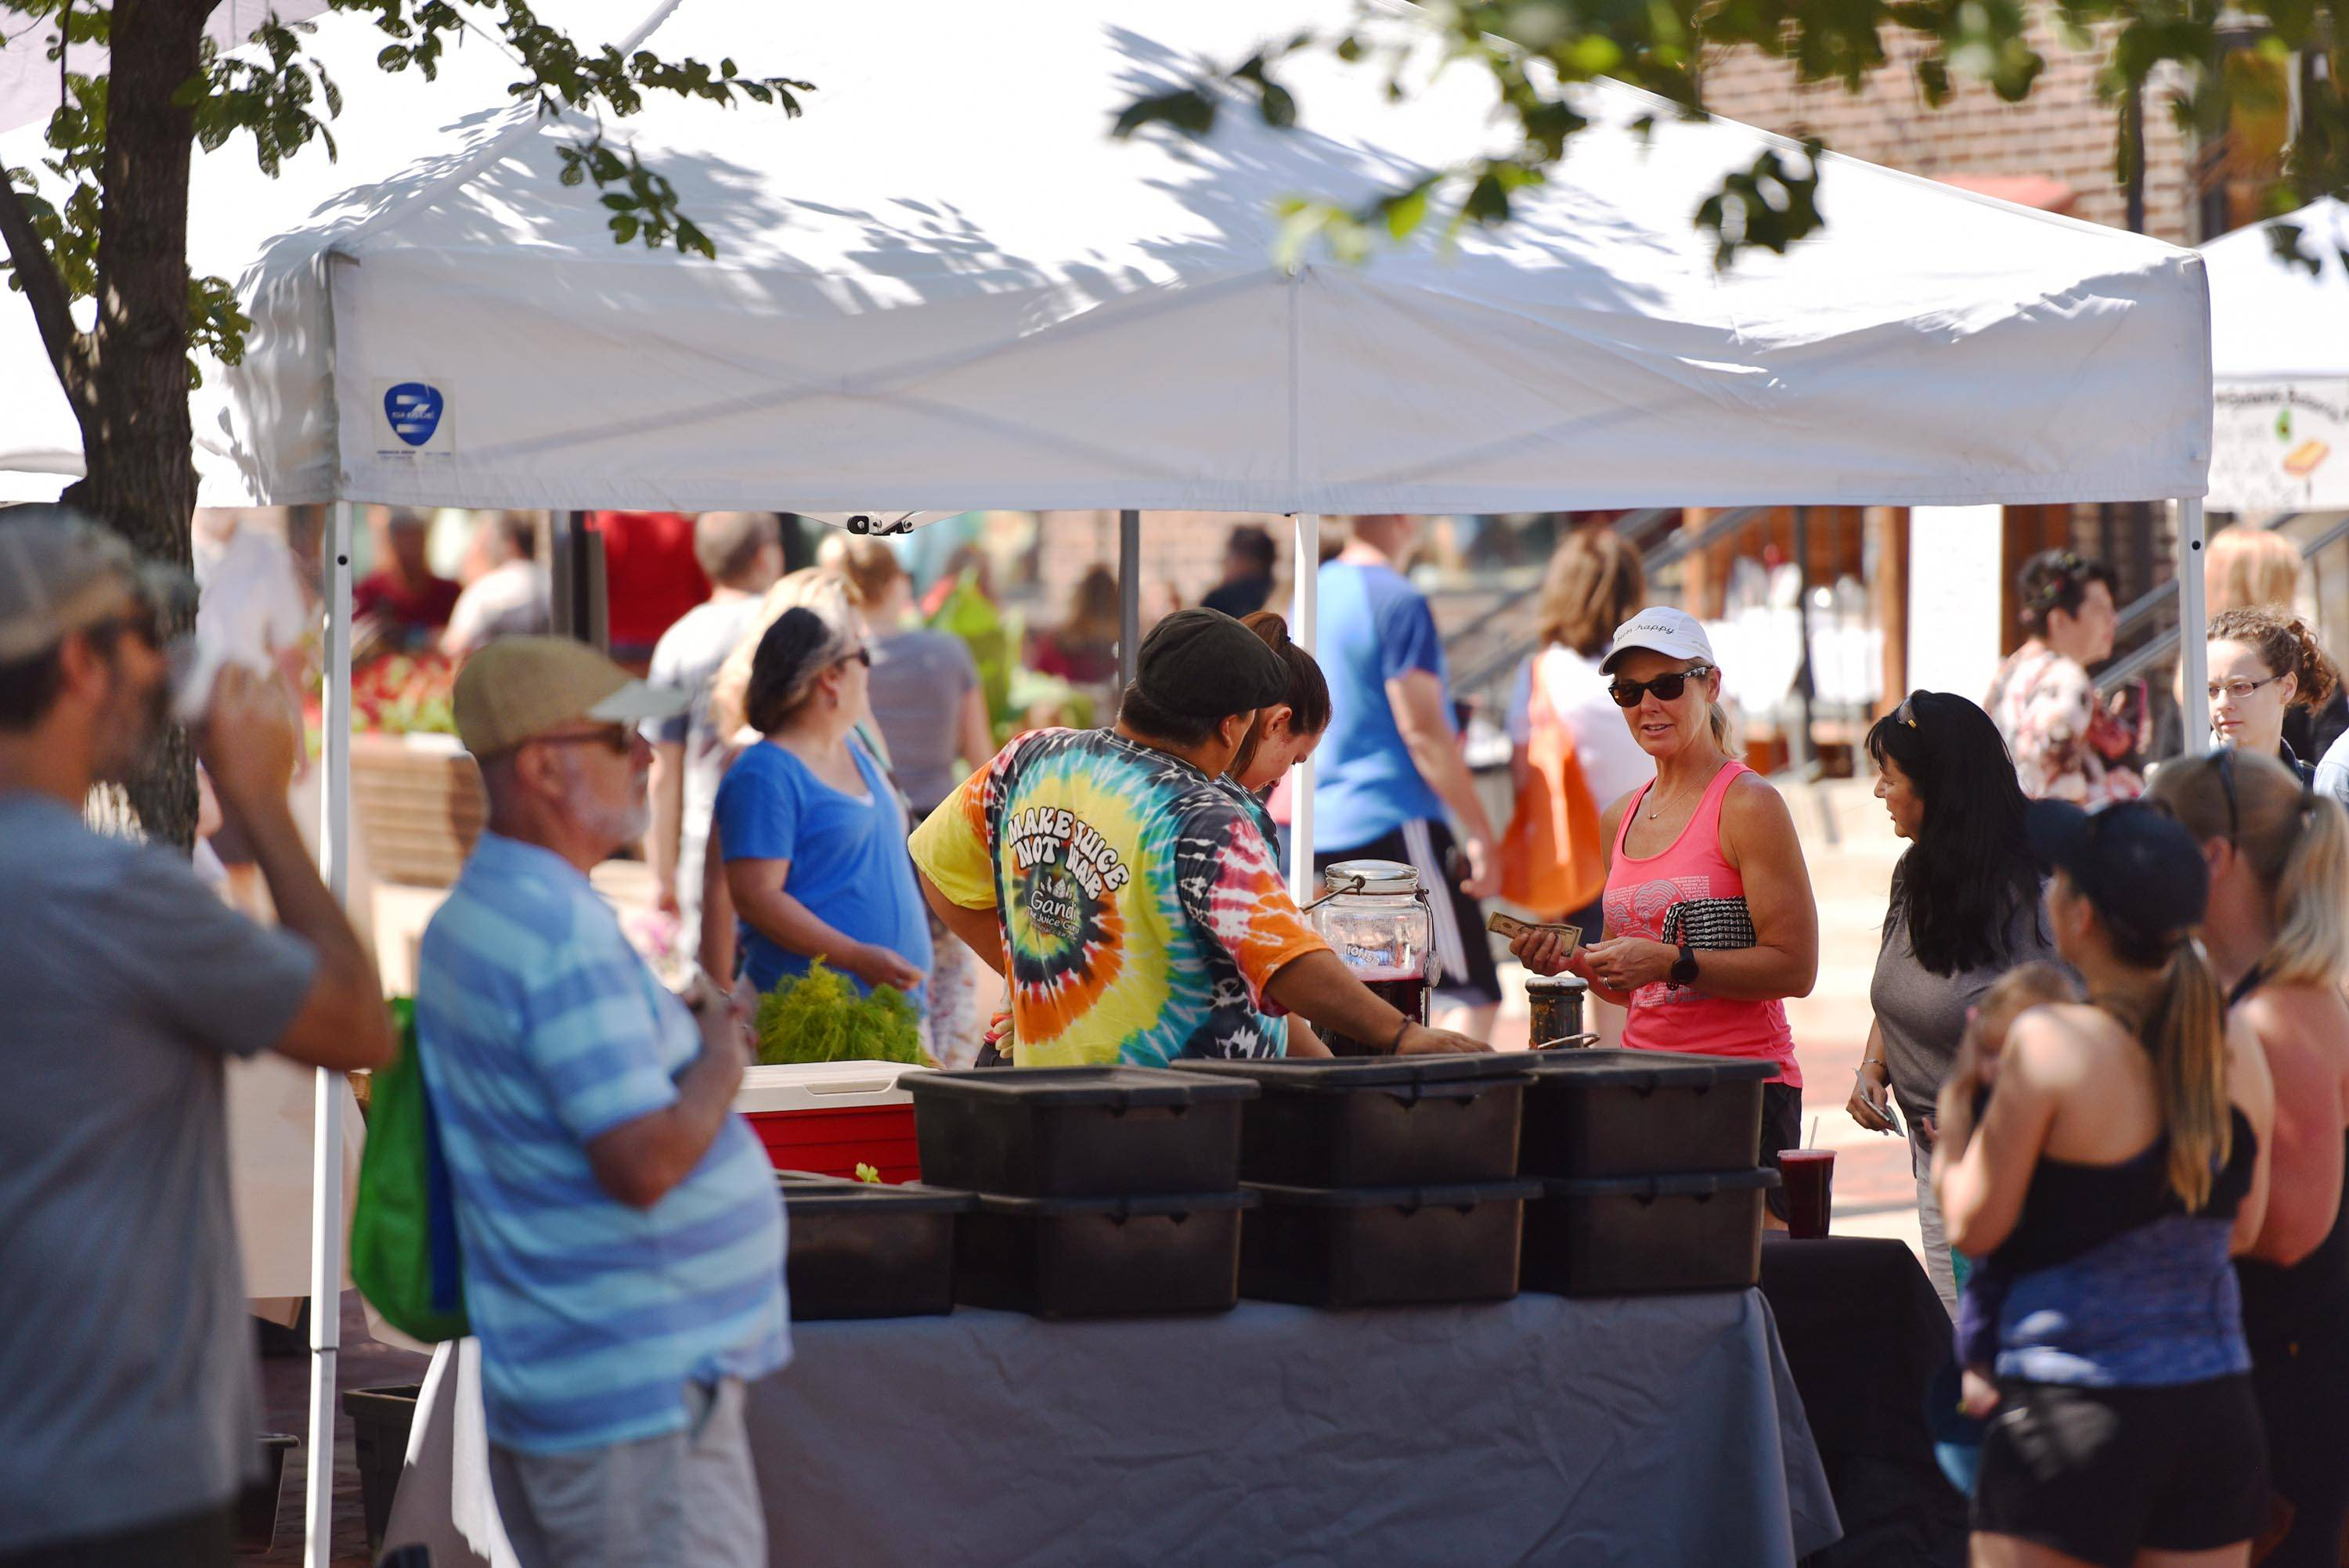 The pleasant weather kept the farmers market busy on North River Street in Batavia Saturday. The event is held every Saturday, 8 a.m. to noon, through Oct. 27.